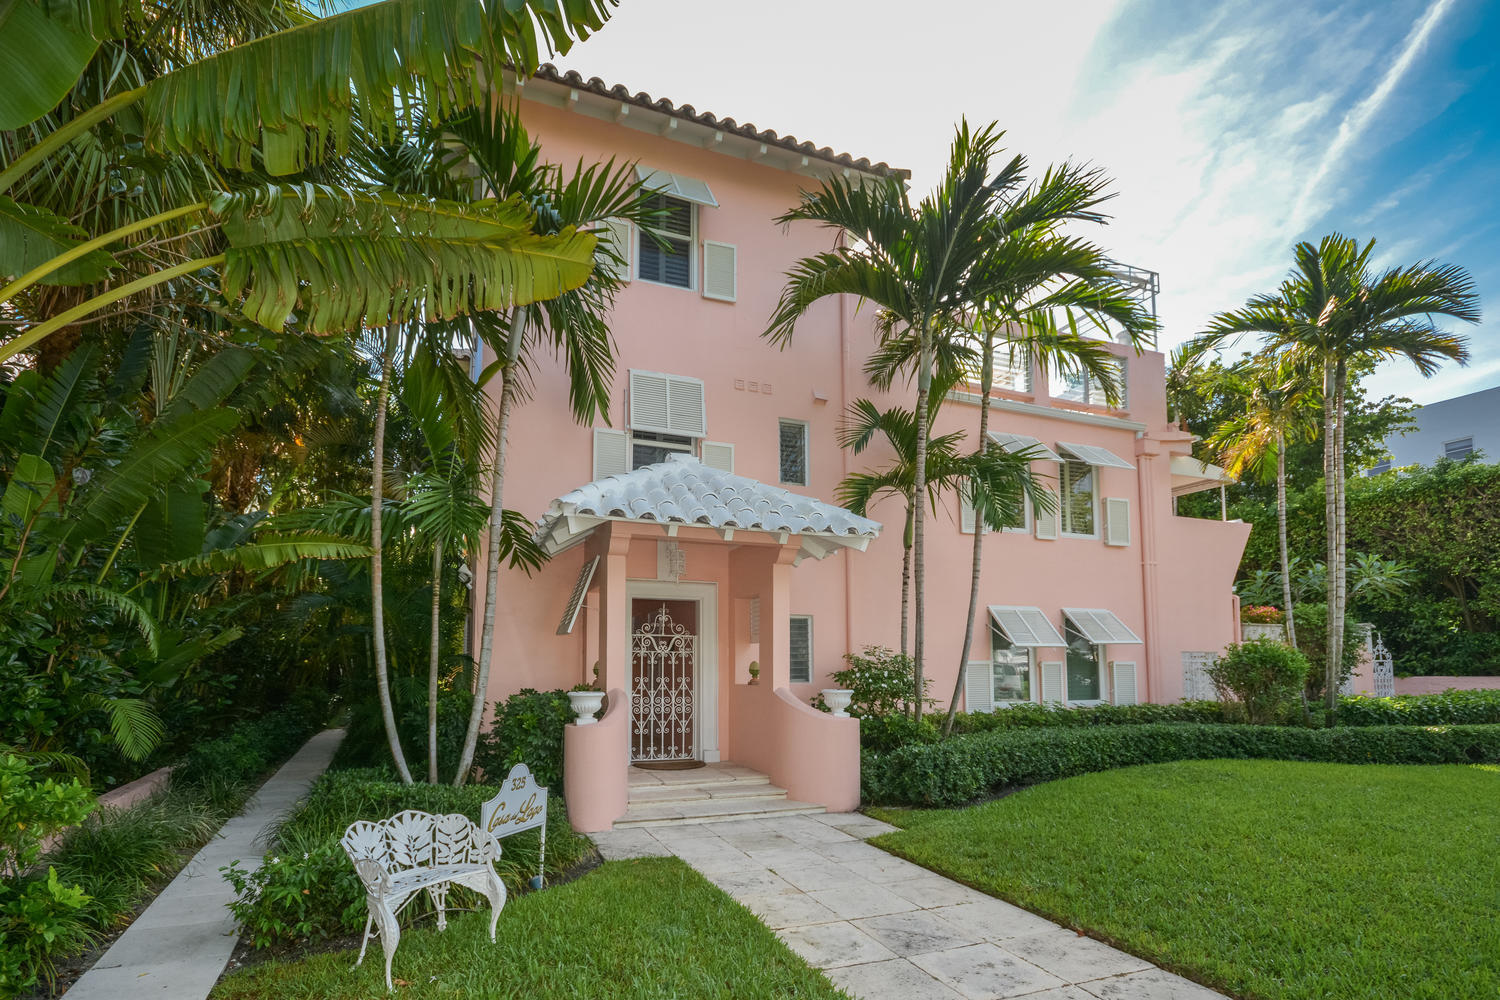 325 S LAKE DRIVE, PALM BEACH, FL 33480